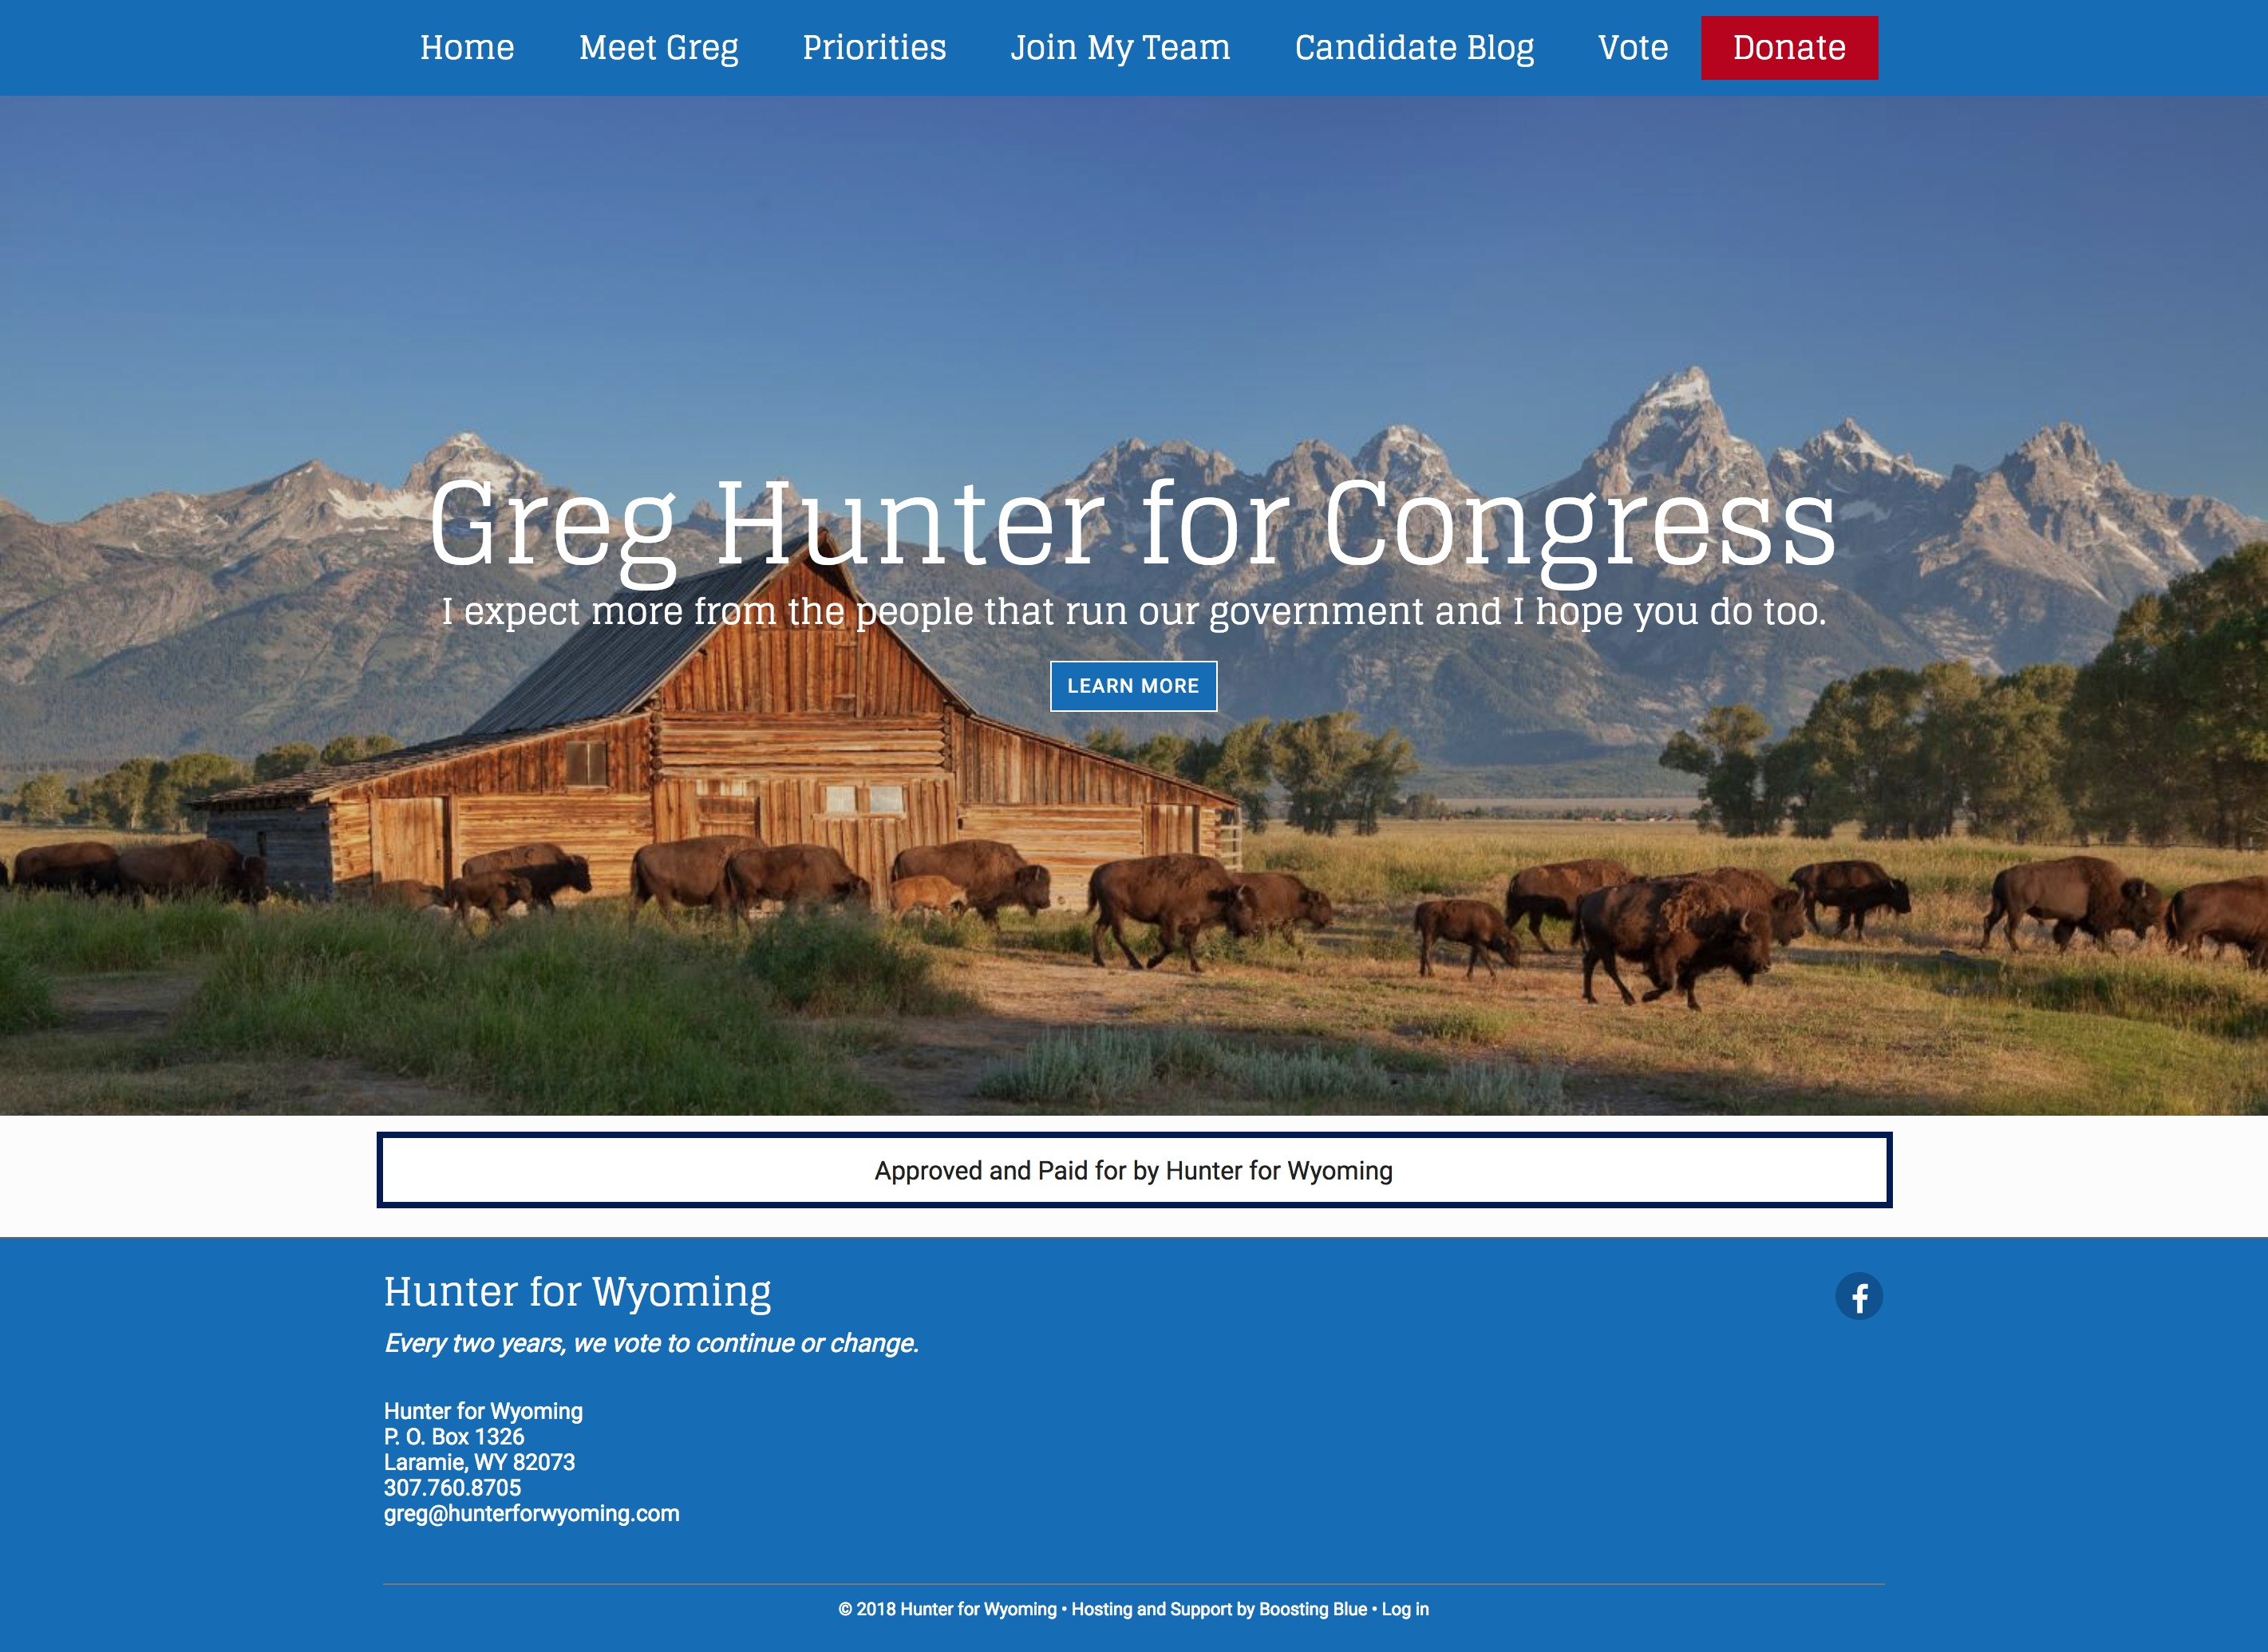 Hunter for Wyoming